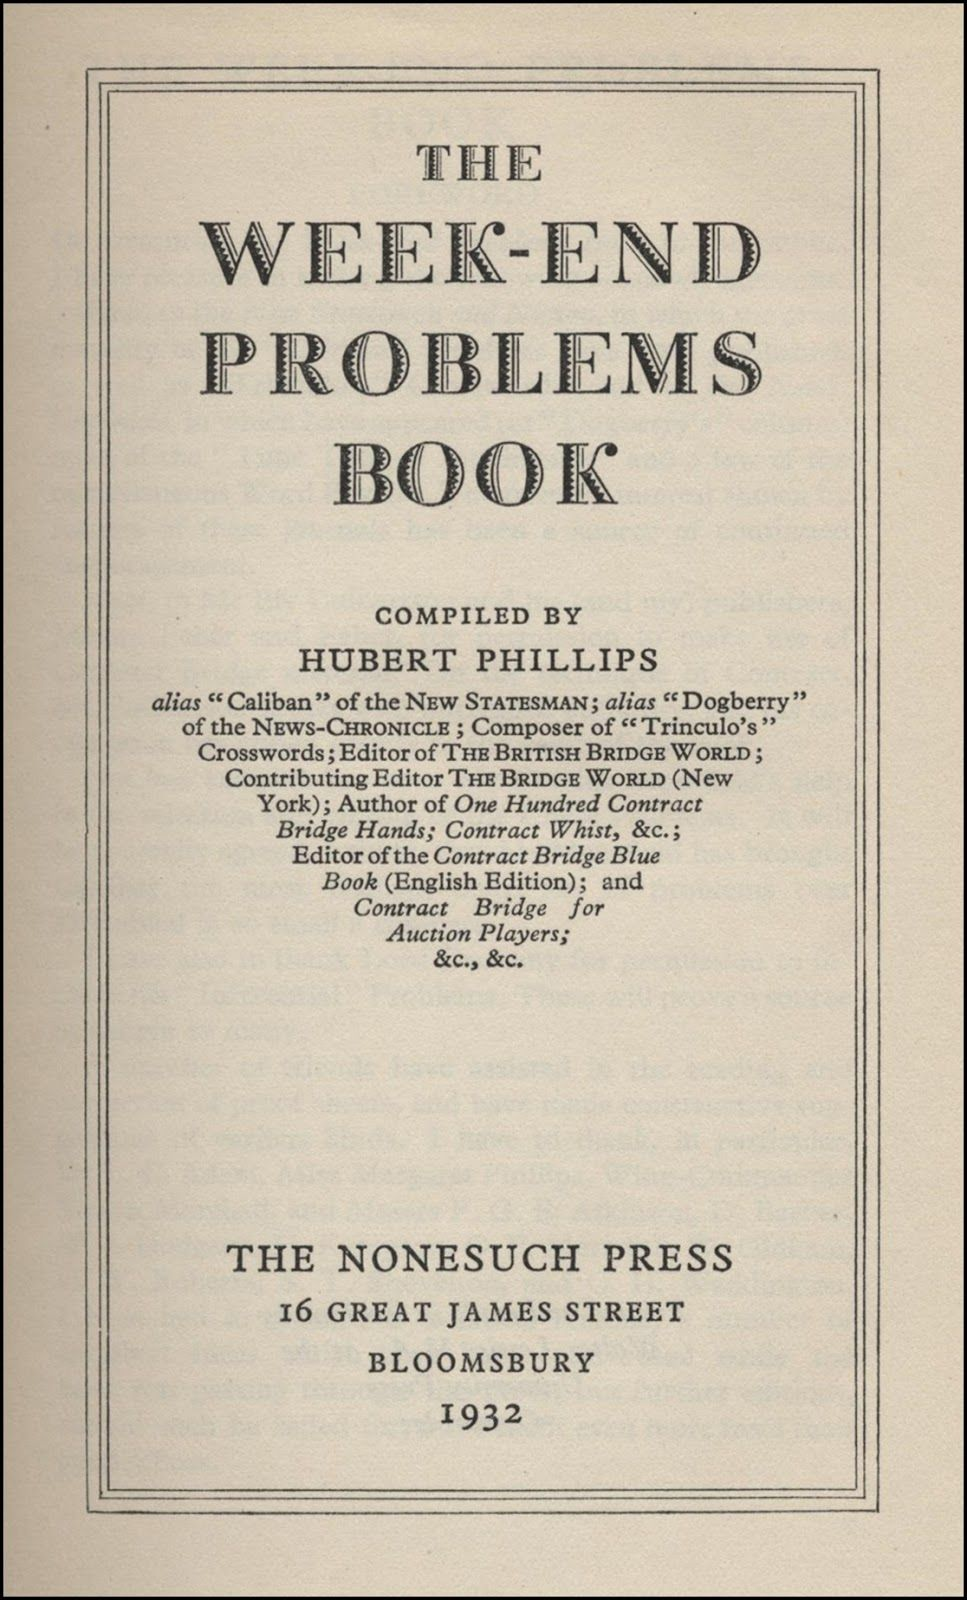 The Week-End Problem Book 1932